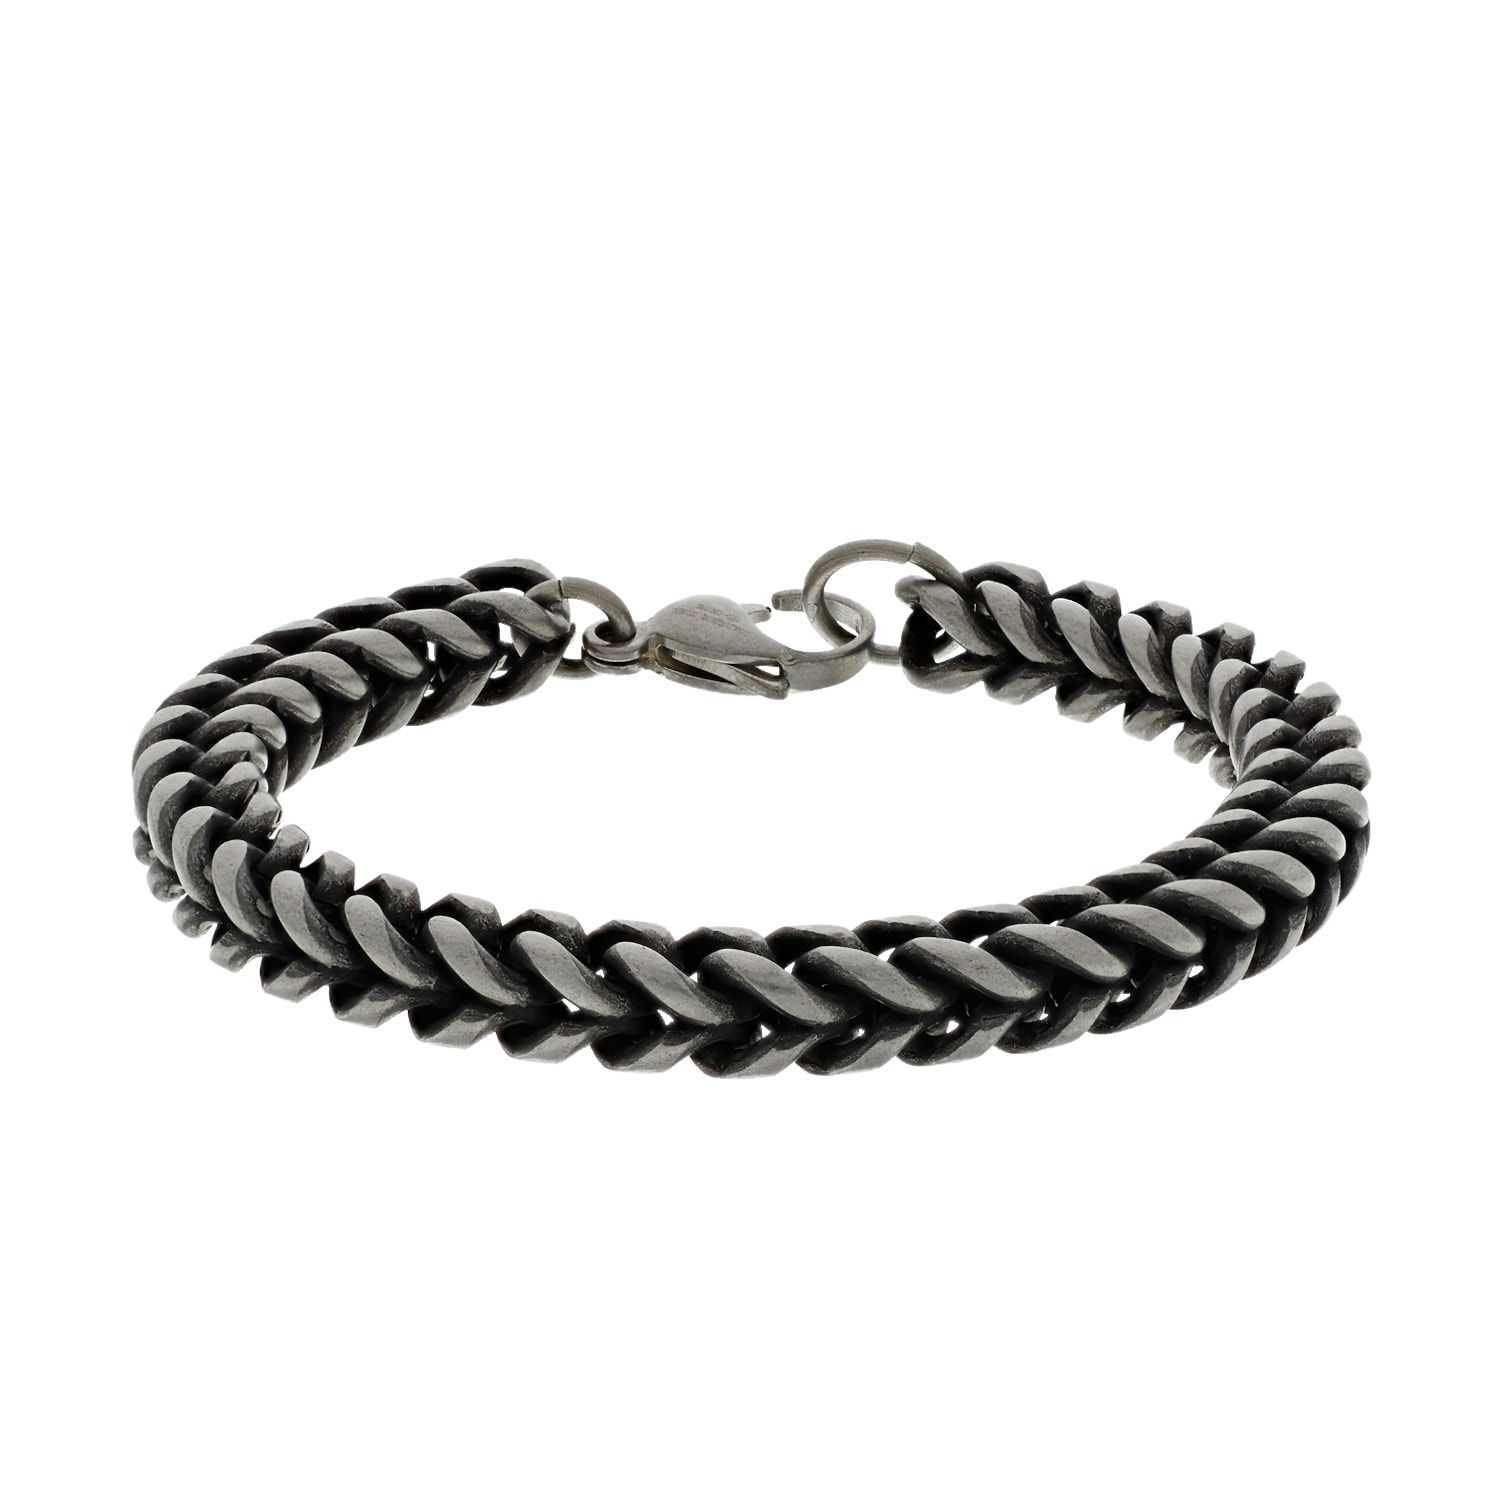 1913 Men S Oxidized Stainless Steel Square Cuban Chain Bracelet Affiliate Oxidized Stainless Men Steel In 2020 Cuban Chain Chain Bracelet Bracelets